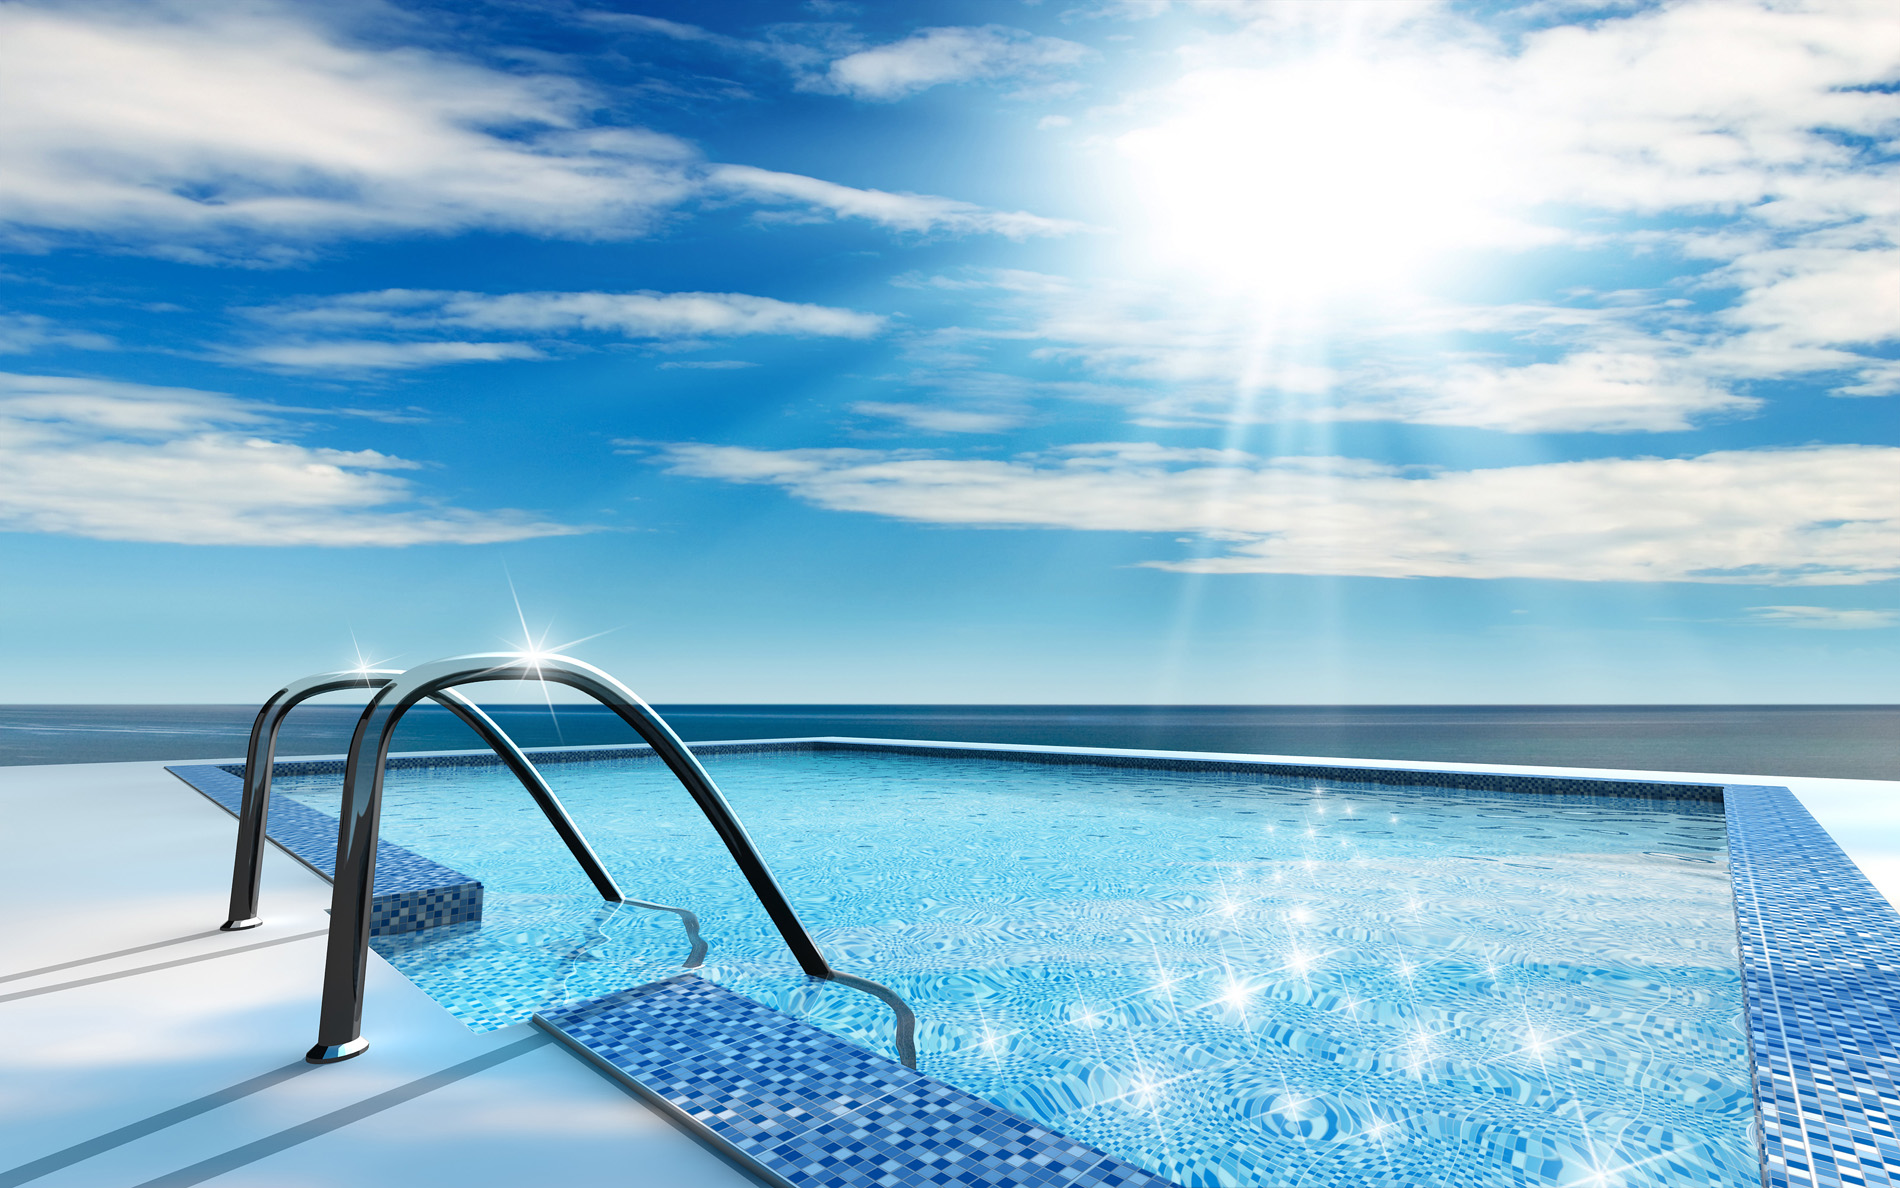 Open clouds and open air swimming pool 52334